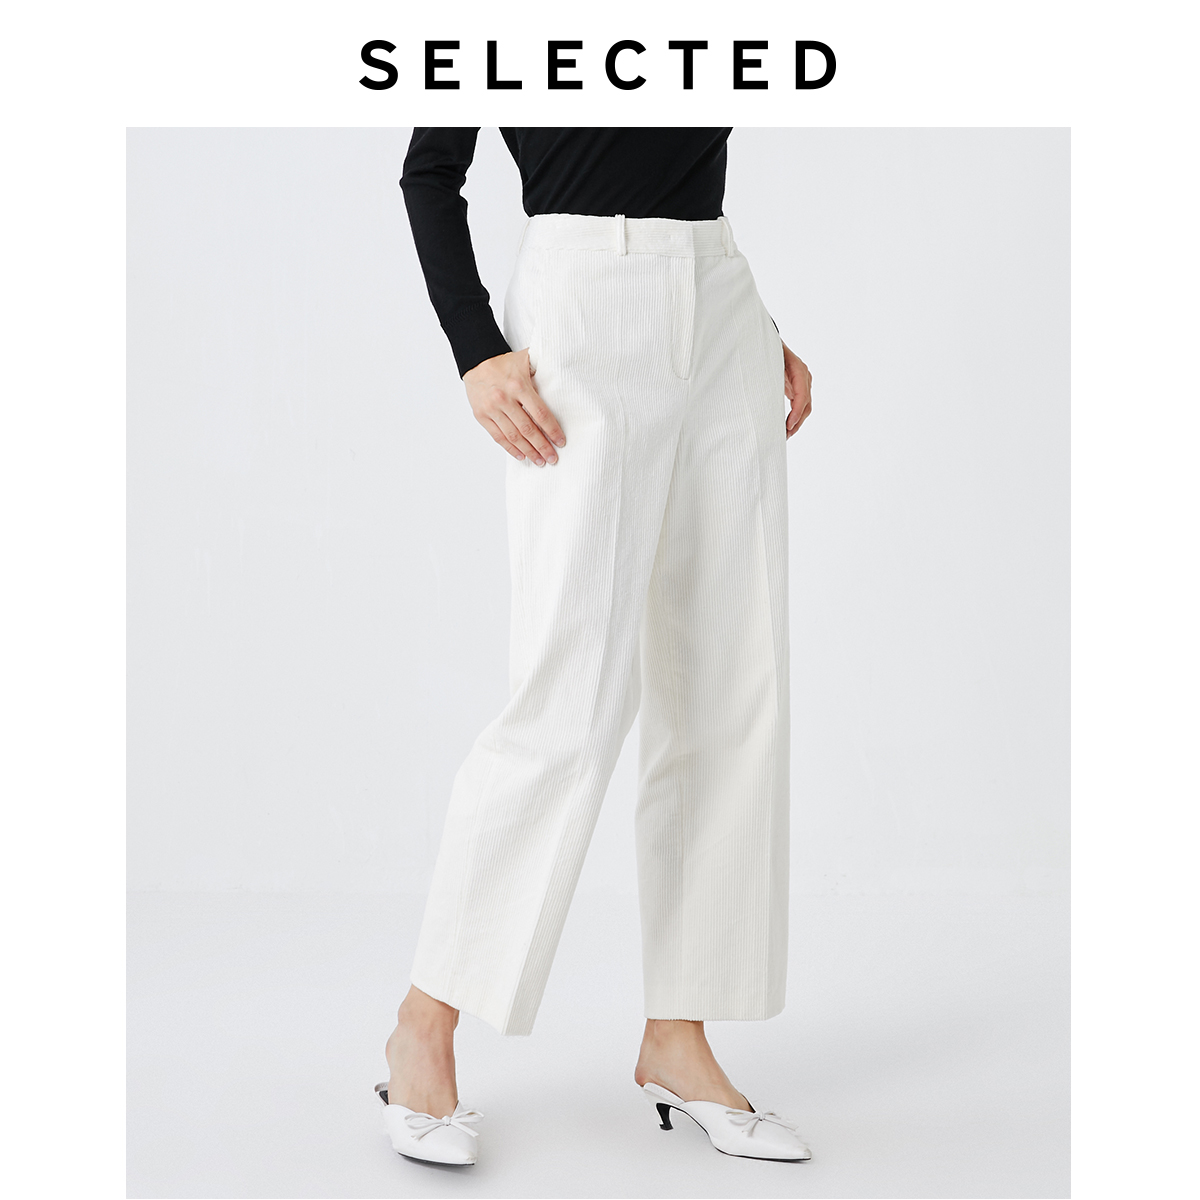 SELECTED Women Straight Fit Corduroy Pure Color Mid-rise Crop Pants S|419418506